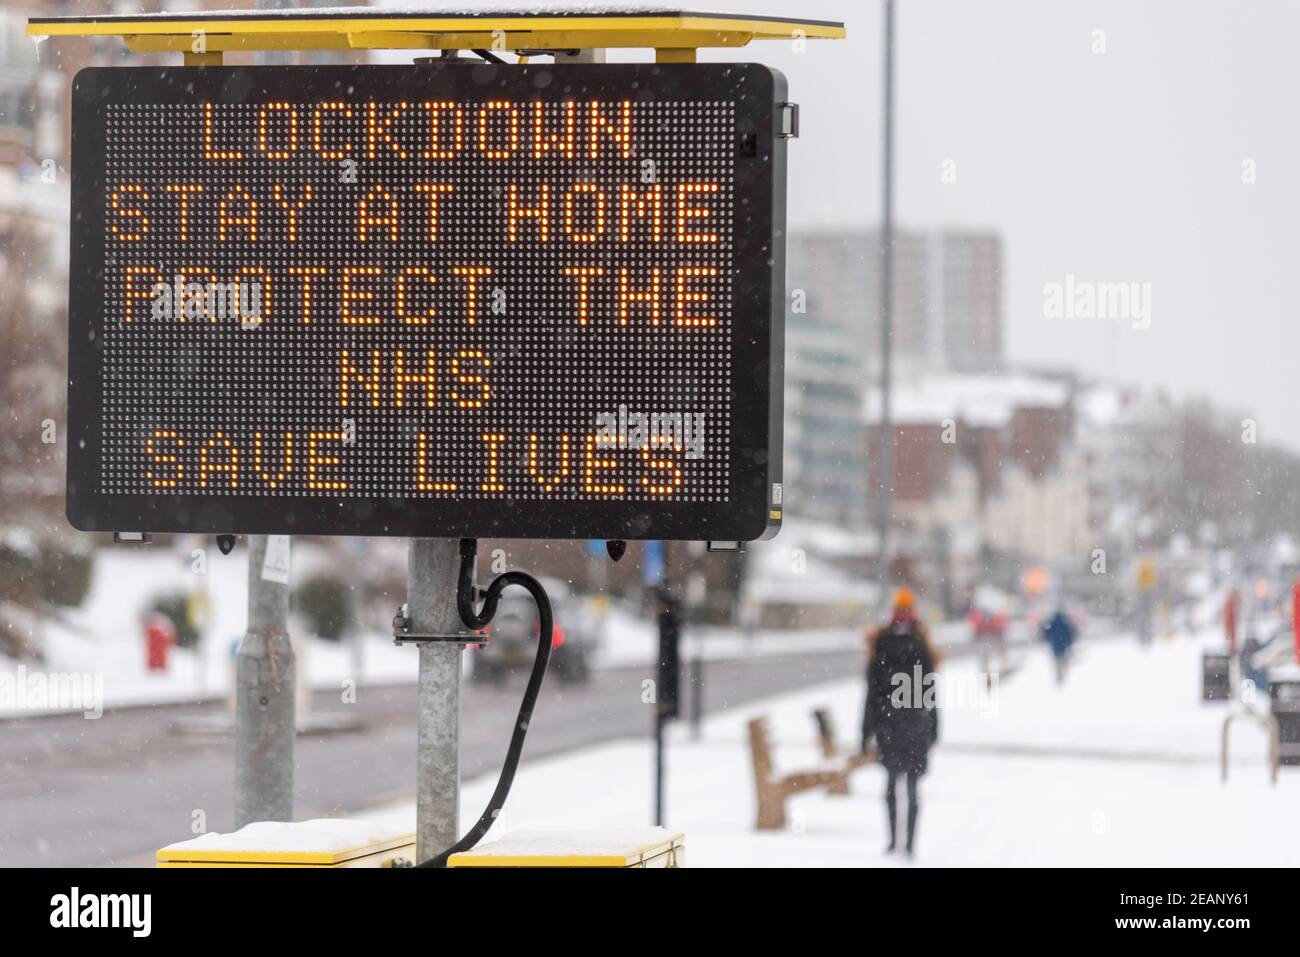 matrix-sign-warning-of-covid-19-lockdown-measures-in-southend-on-sea-essex-uk-with-snow-from-storm-darcy-stay-at-home-protect-the-nhs-slogan-2EANY61.jpg